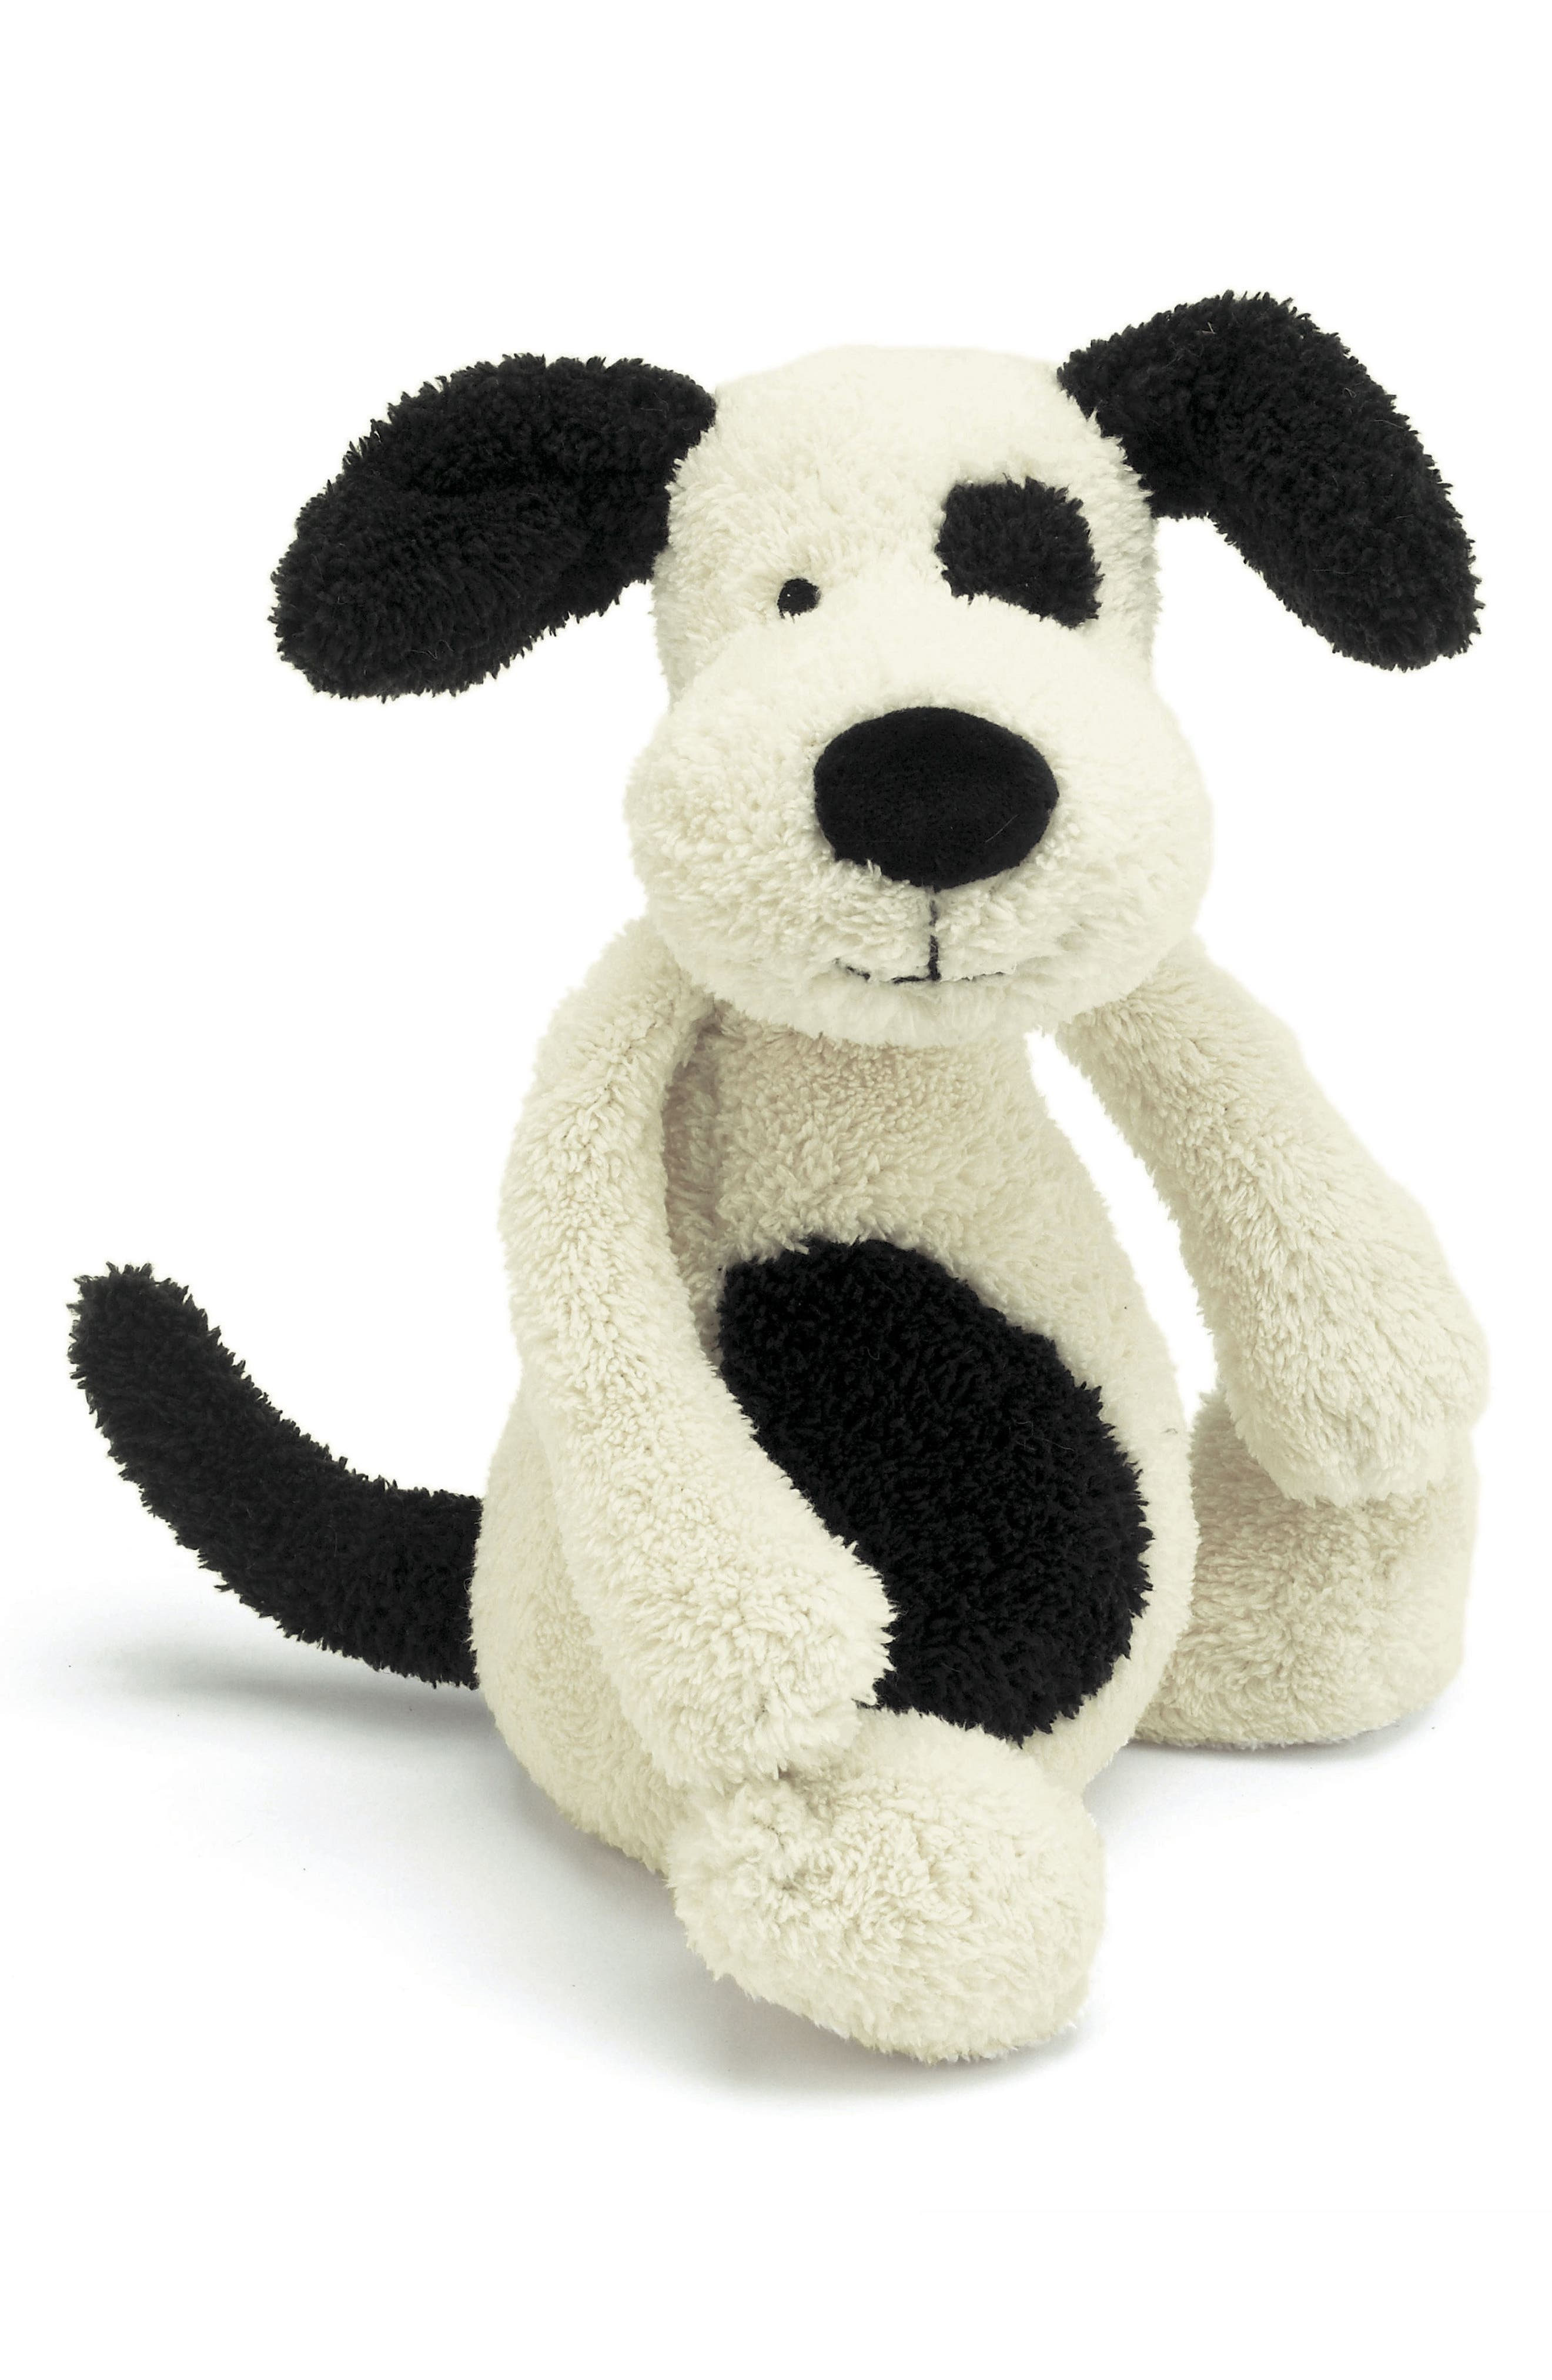 Alternate Image 1 Selected - Jellycat 'Large Bashful Puppy' Stuffed Animal